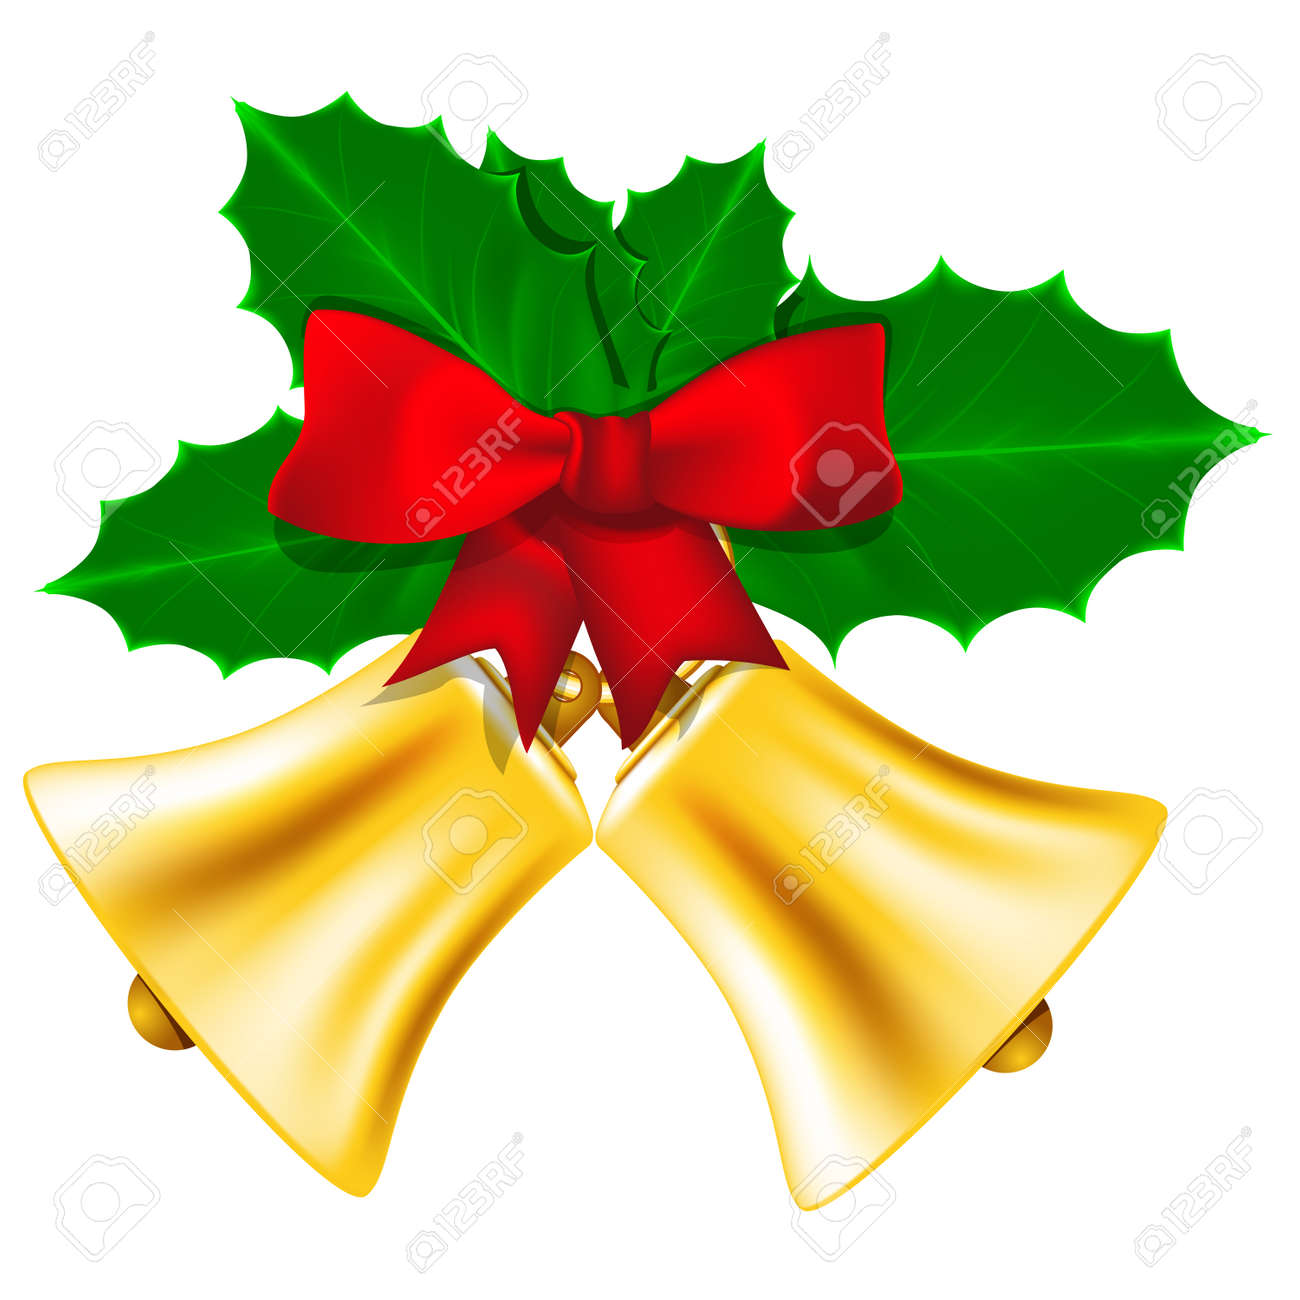 Christmas Leaves.Golden Christmas Bells With Red Bow And Leaves Of Holly